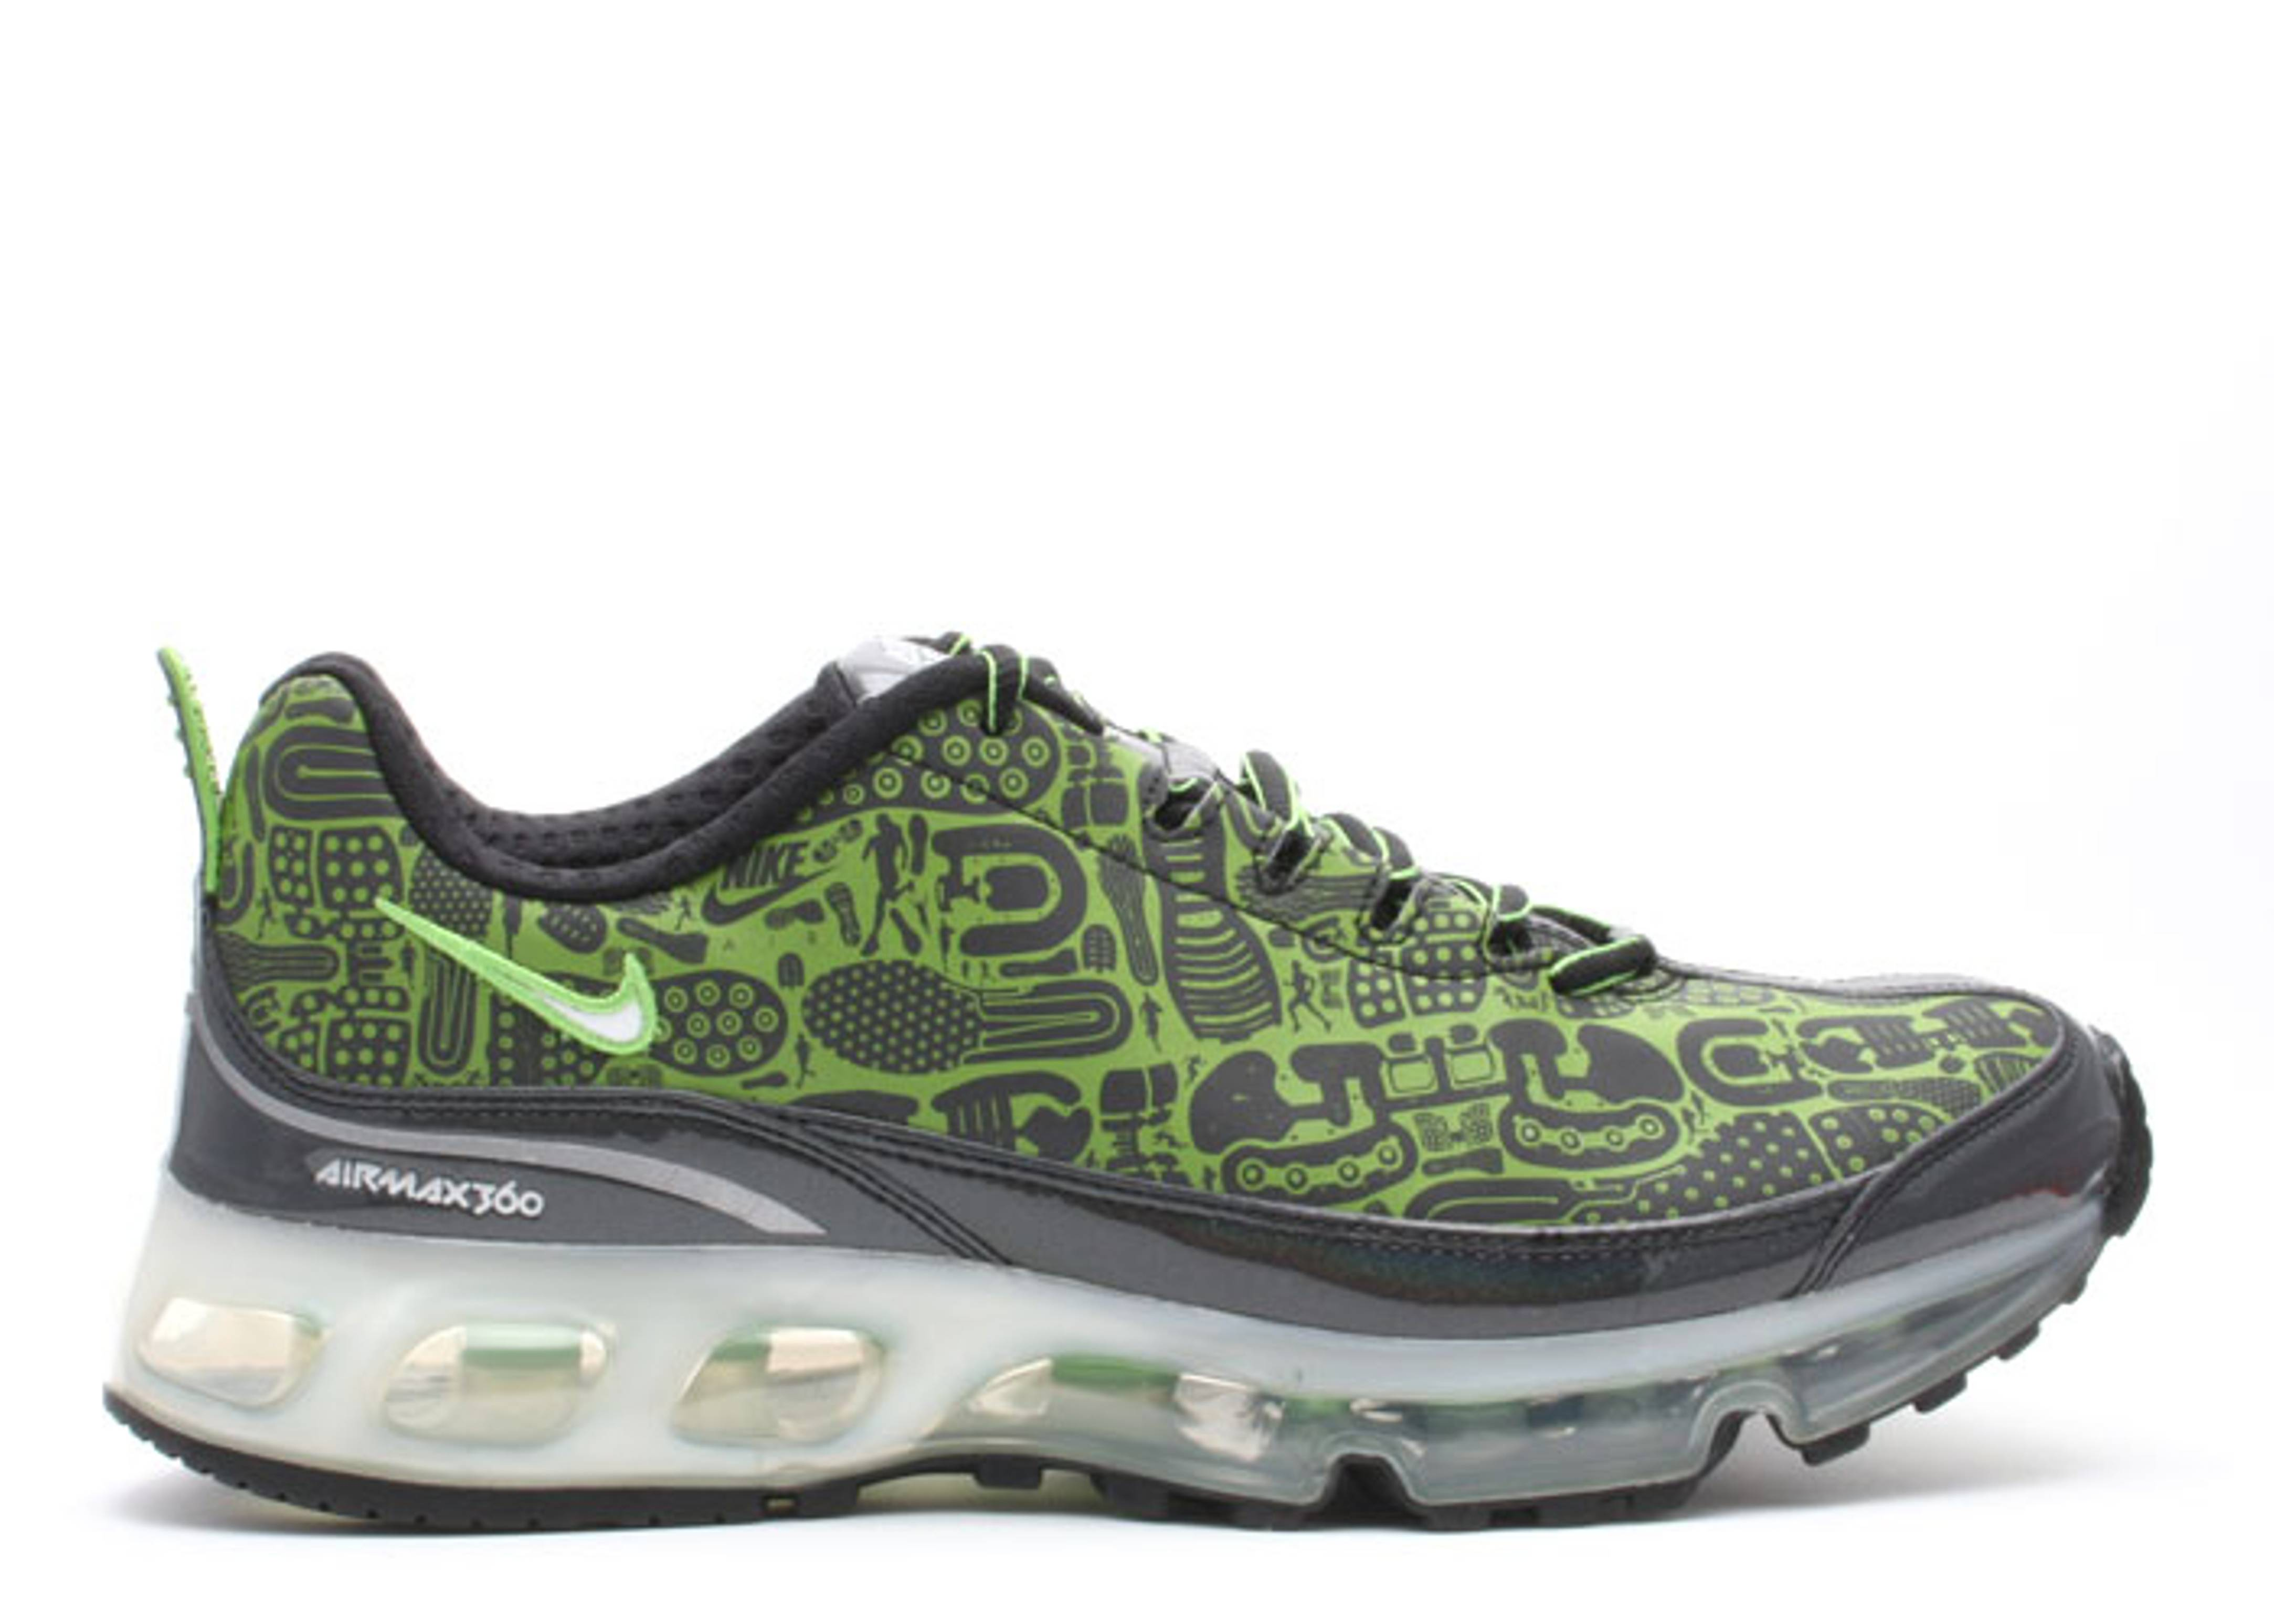 air max 360 rejuvenation